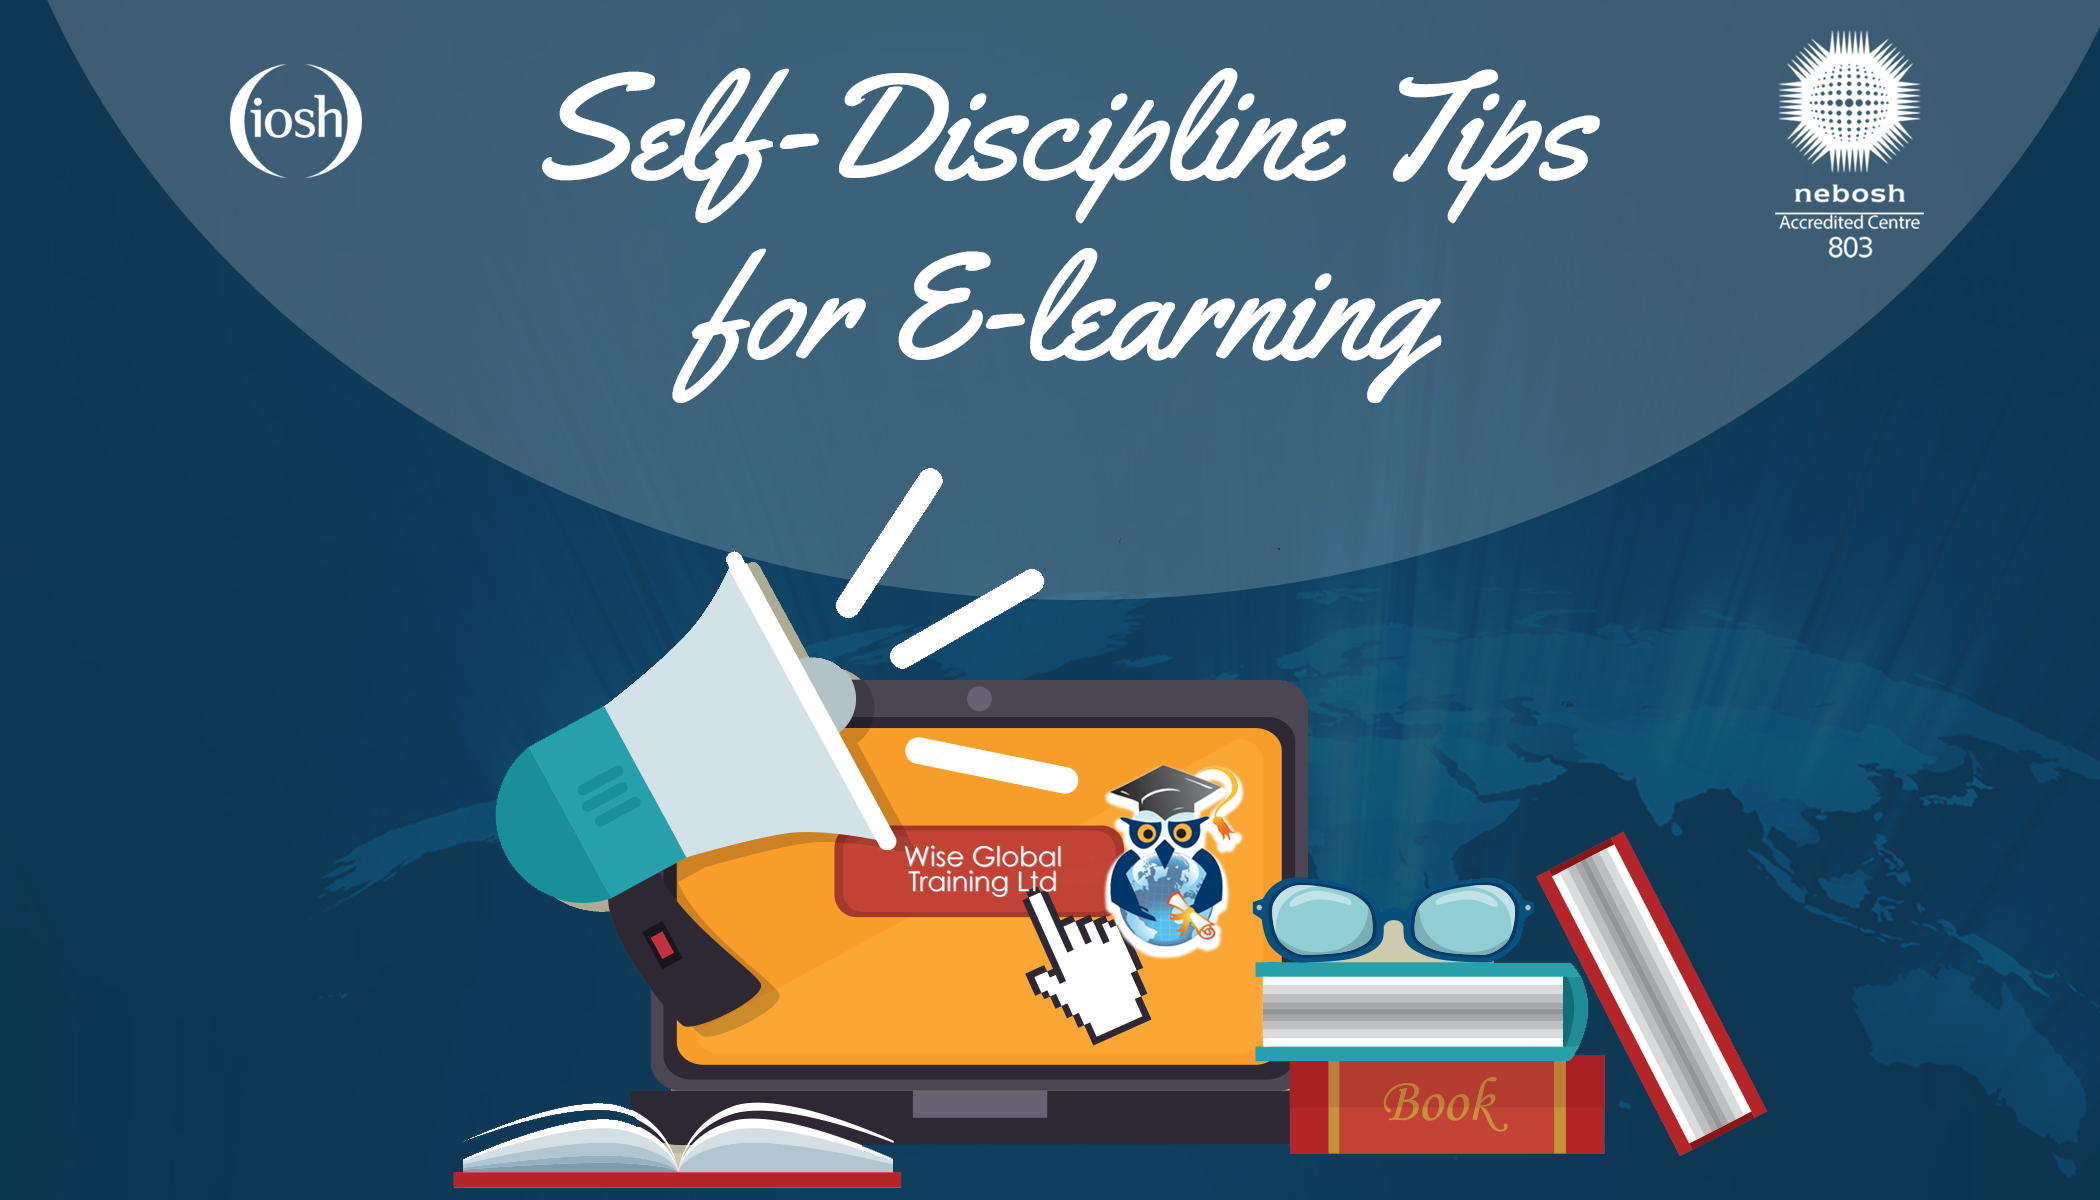 Three self-discipline tips for online learning